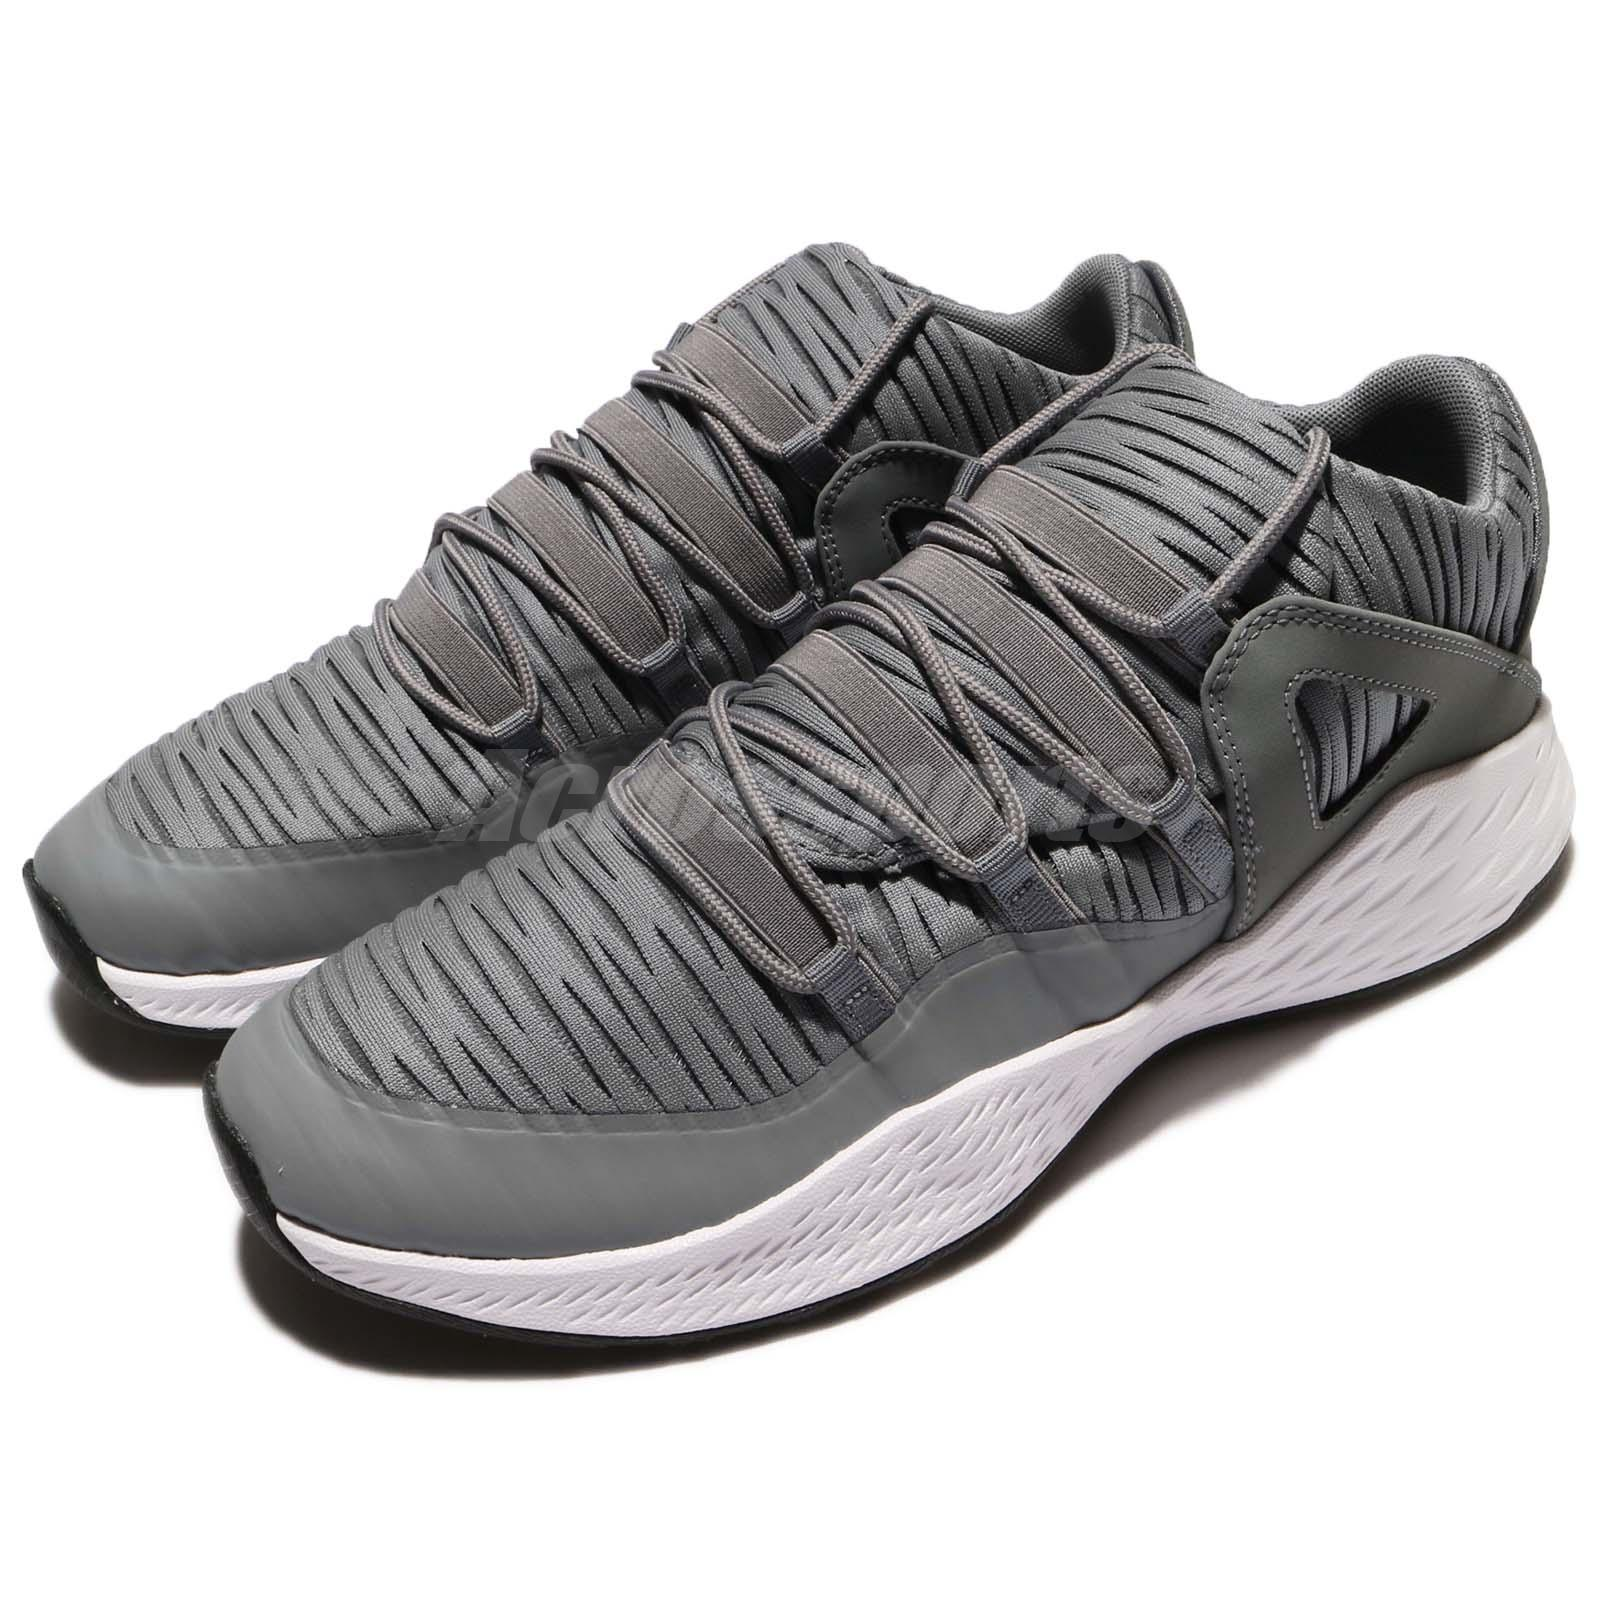 32d917c6153c9c Details about Nike Jordan Formula 23 Low Cool Grey White Men Lifestyle Shoes  AJX 919724-004